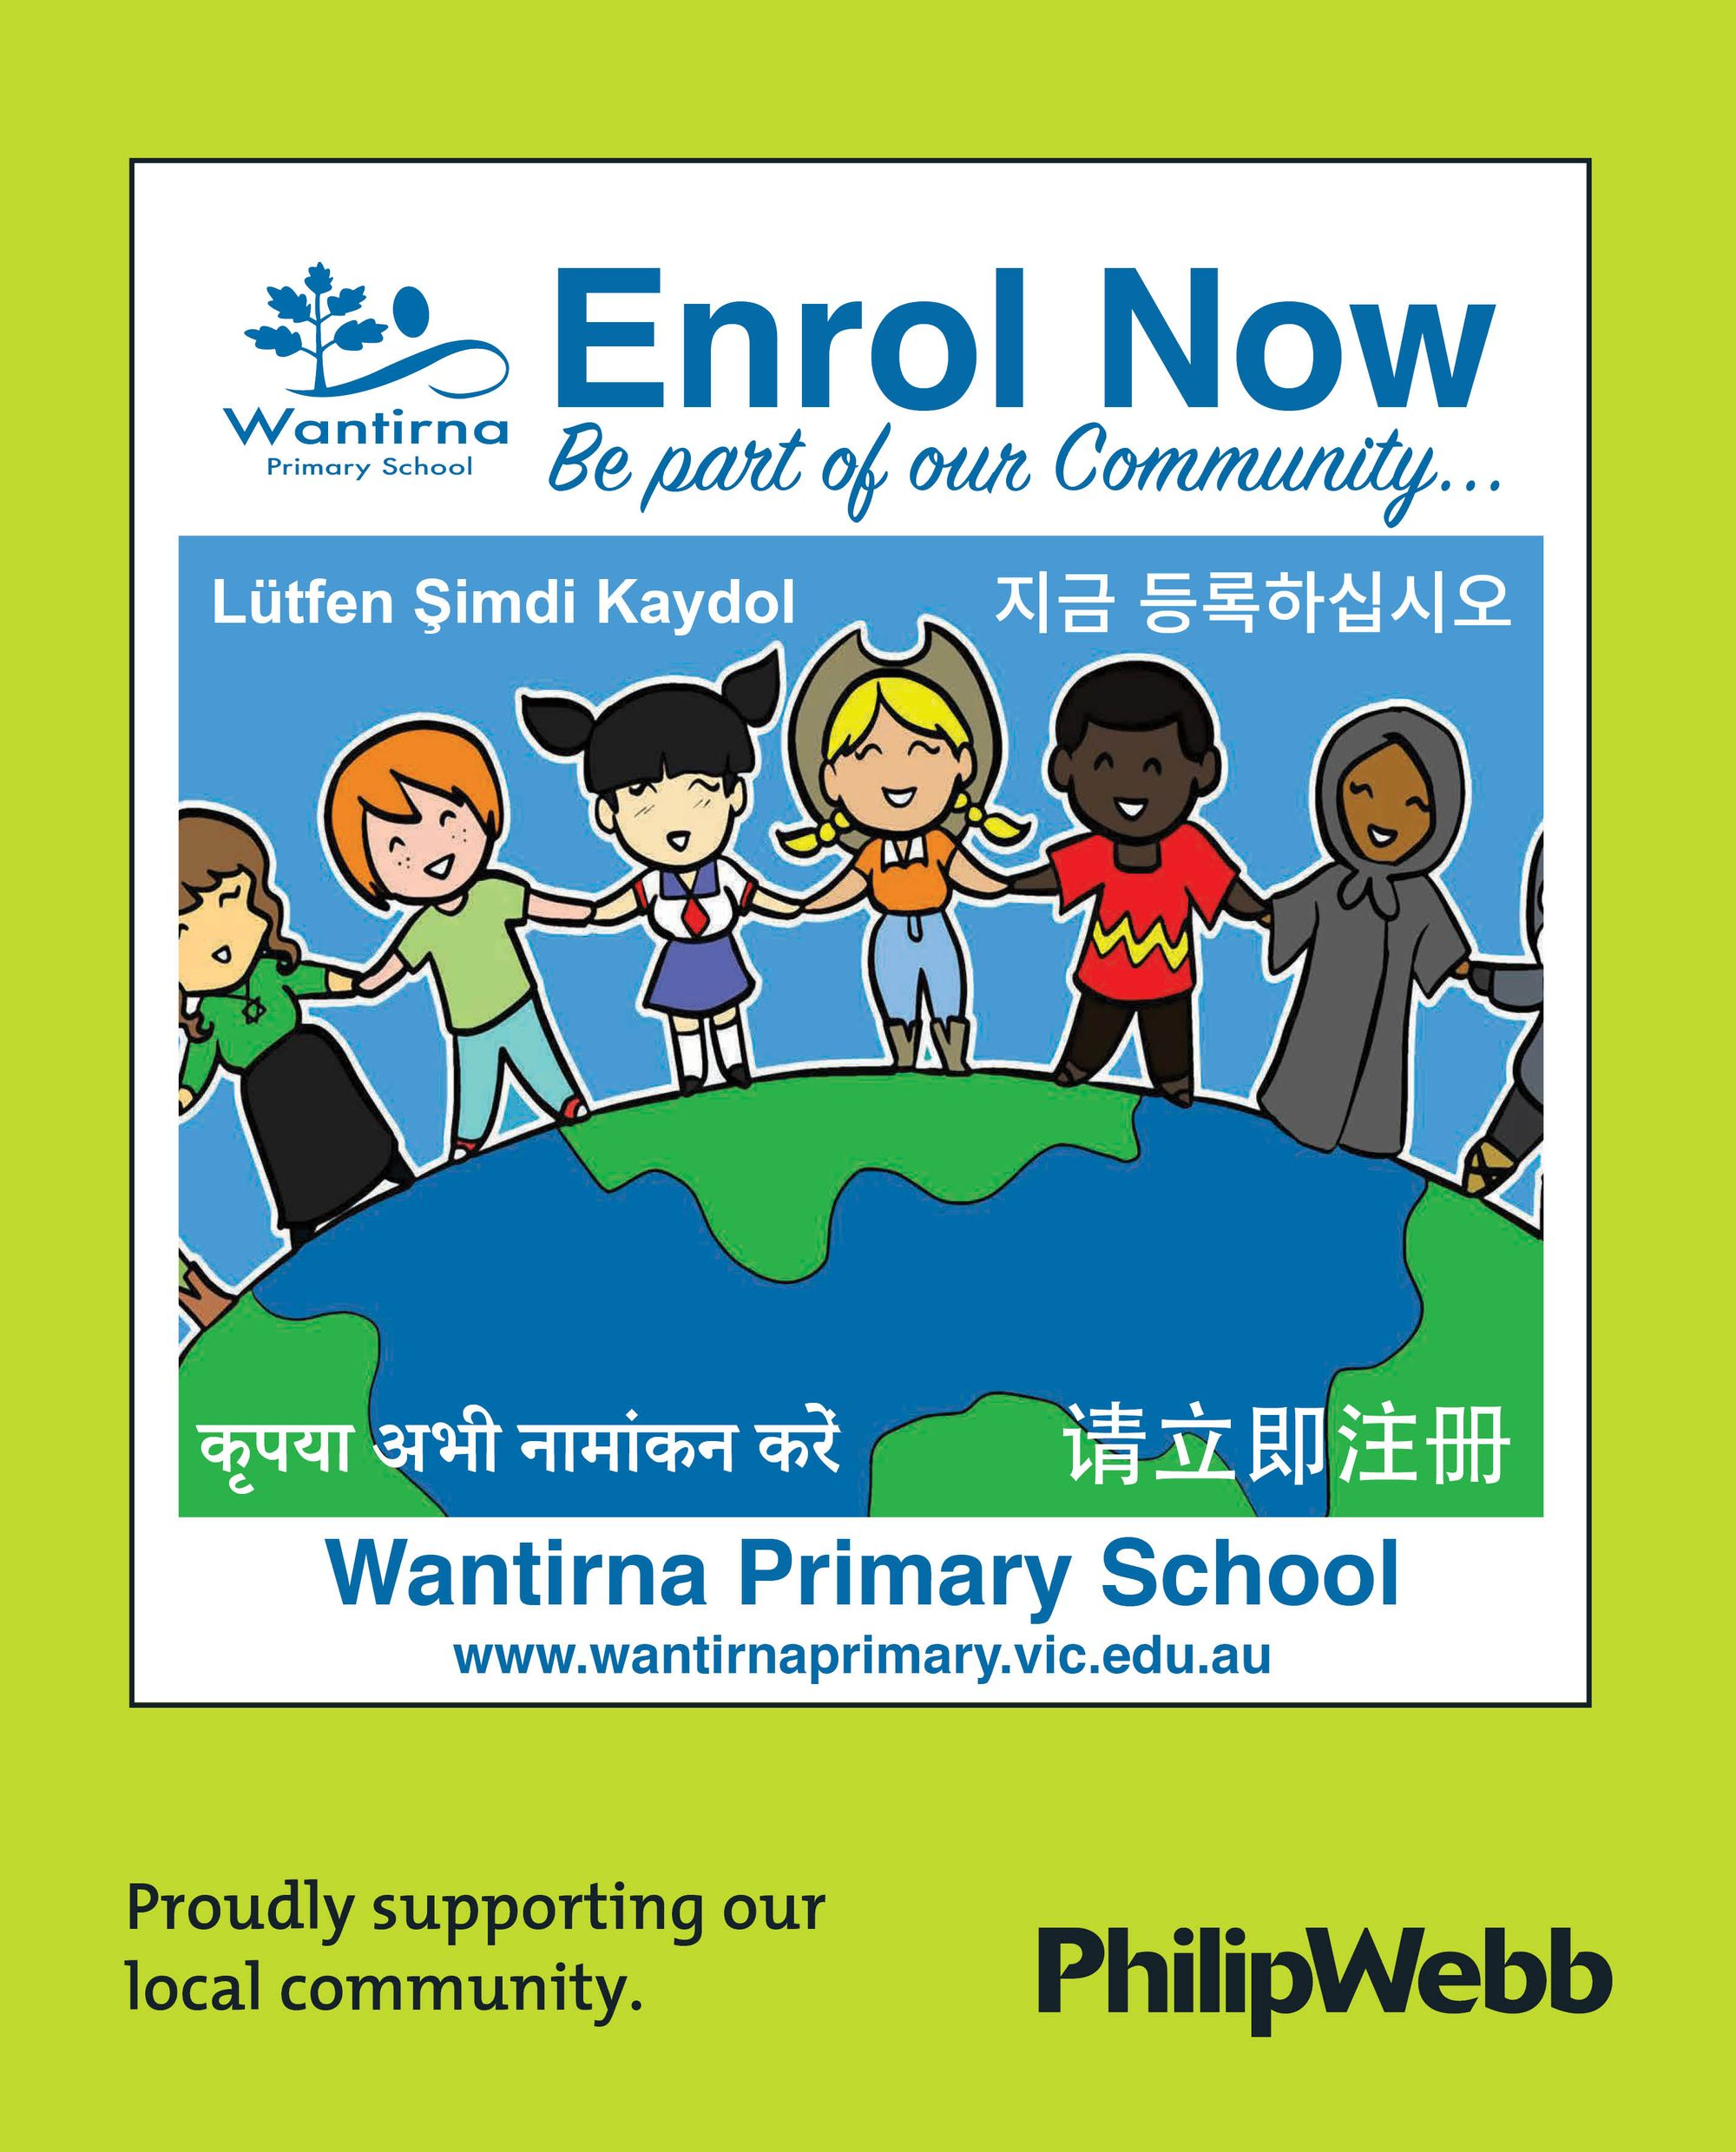 Wantirna Primary